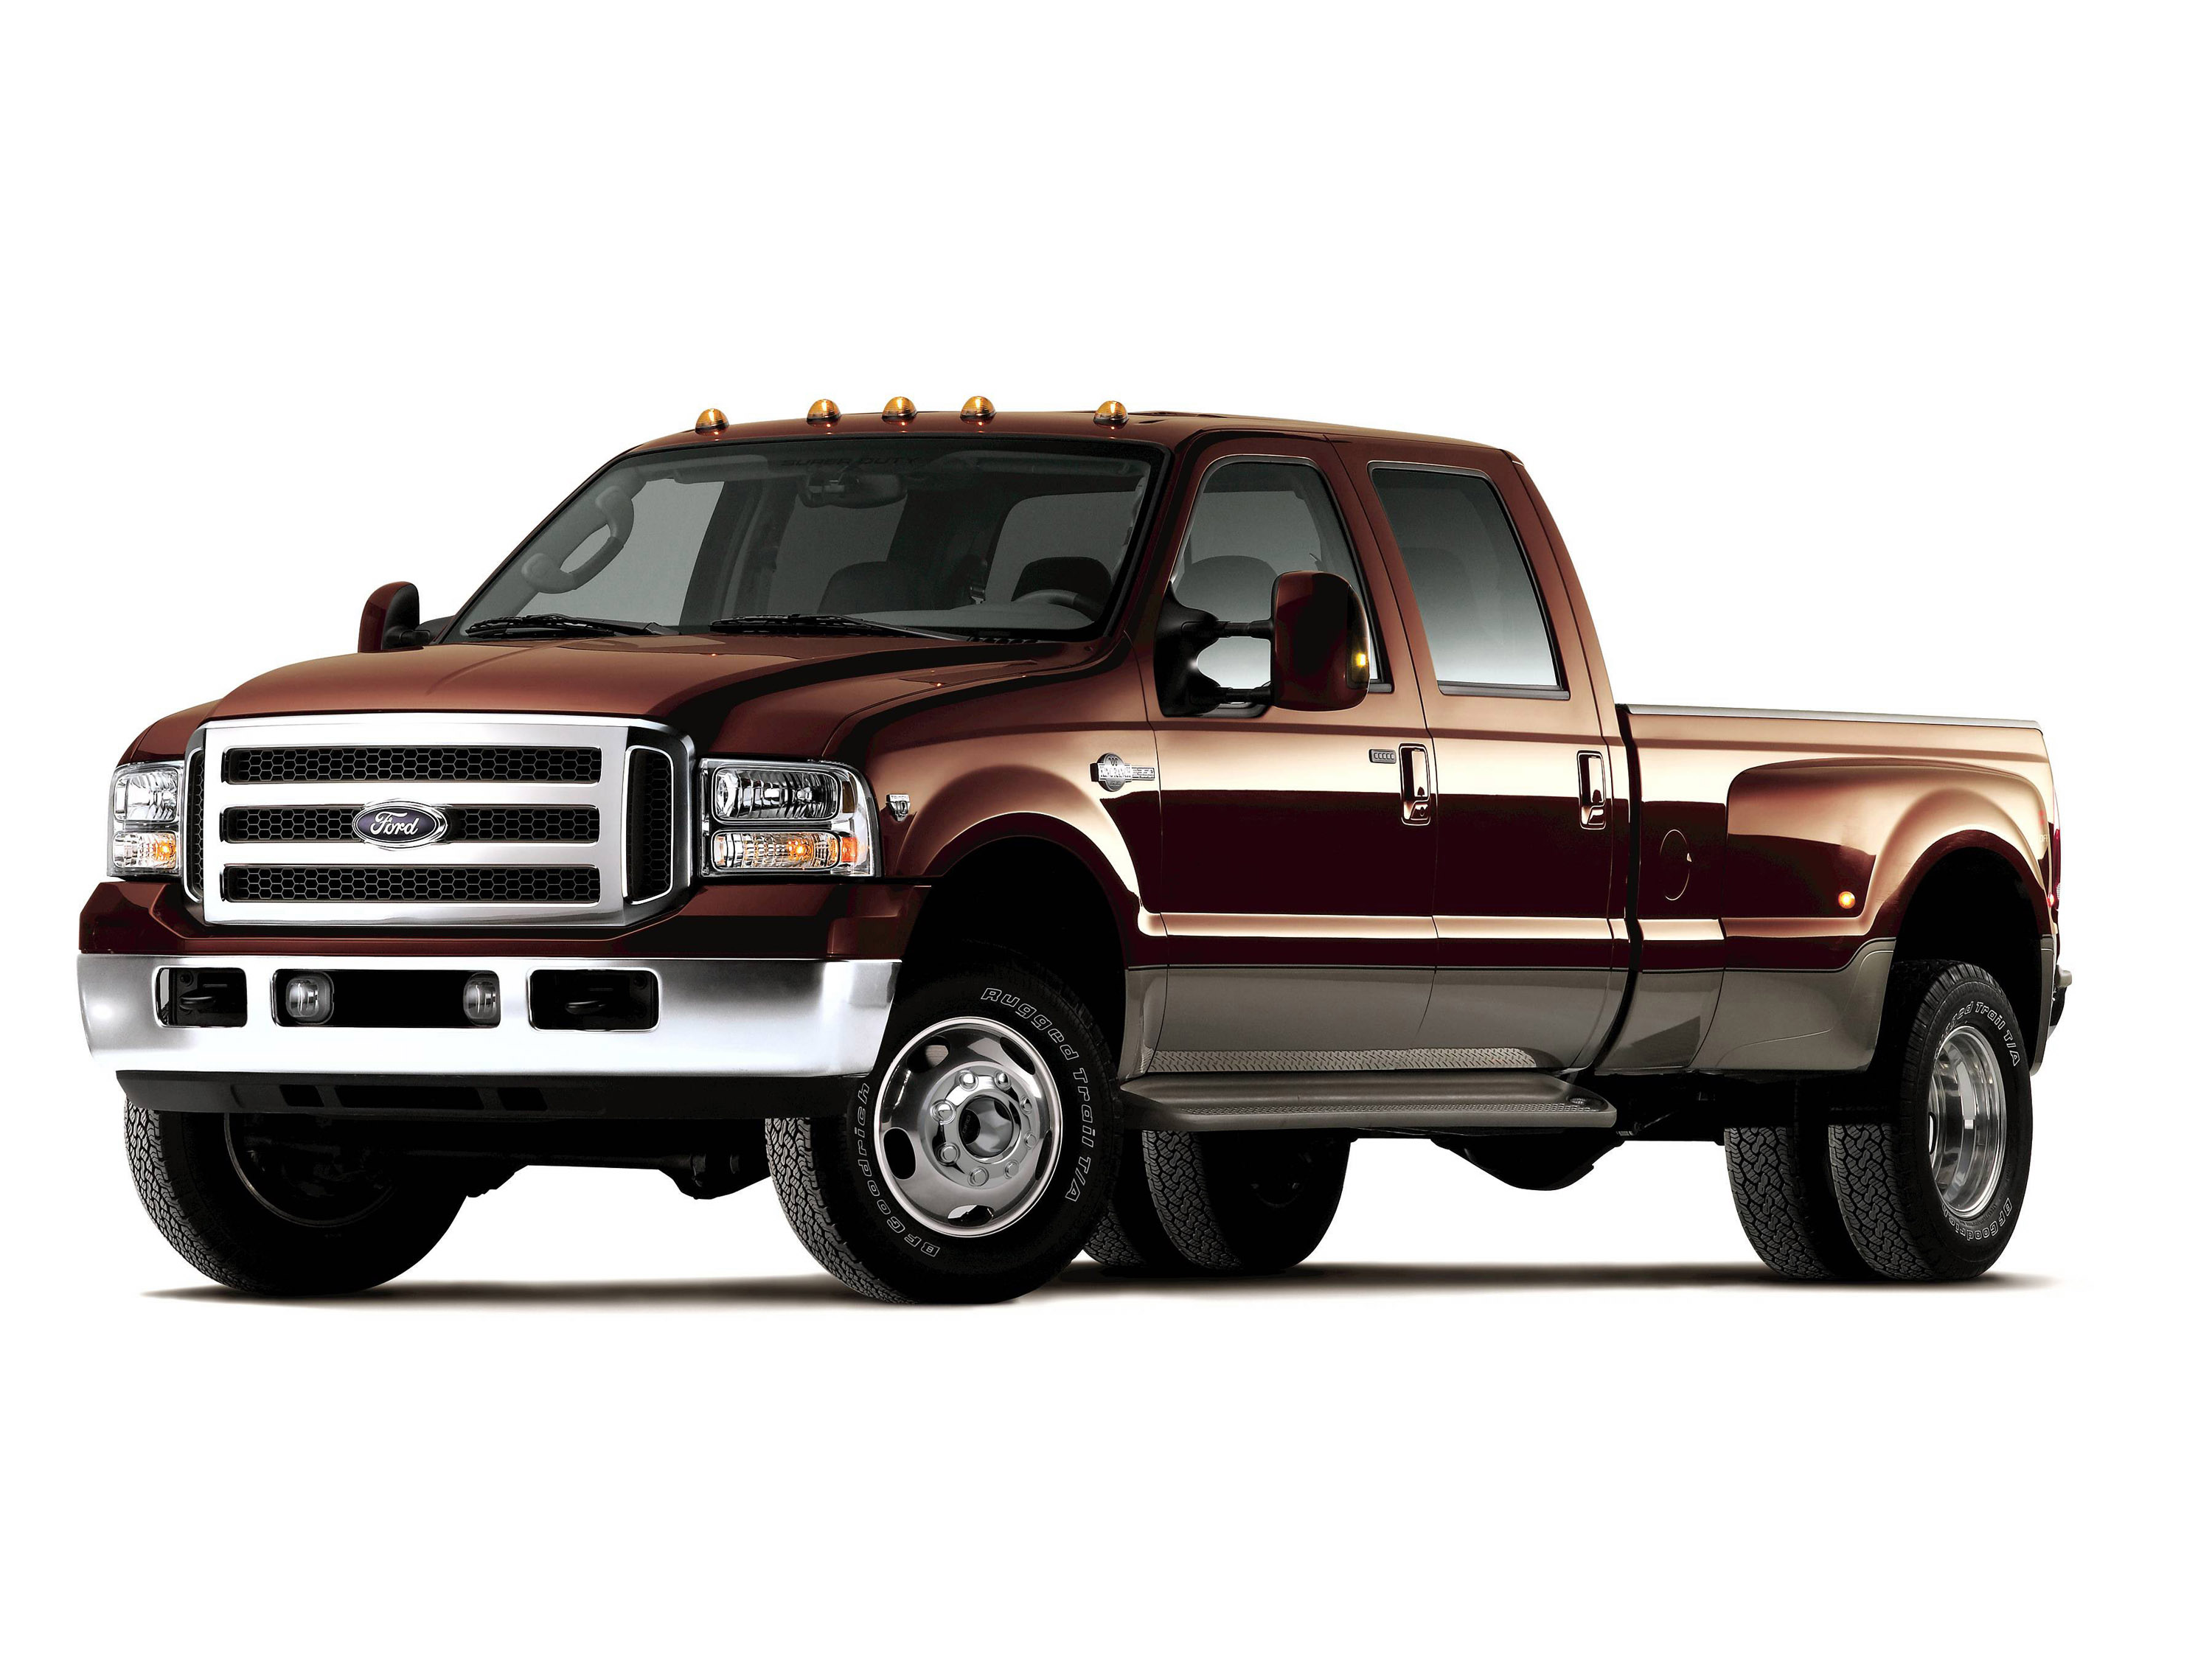 2005 Ford F-350 Super Duty #17